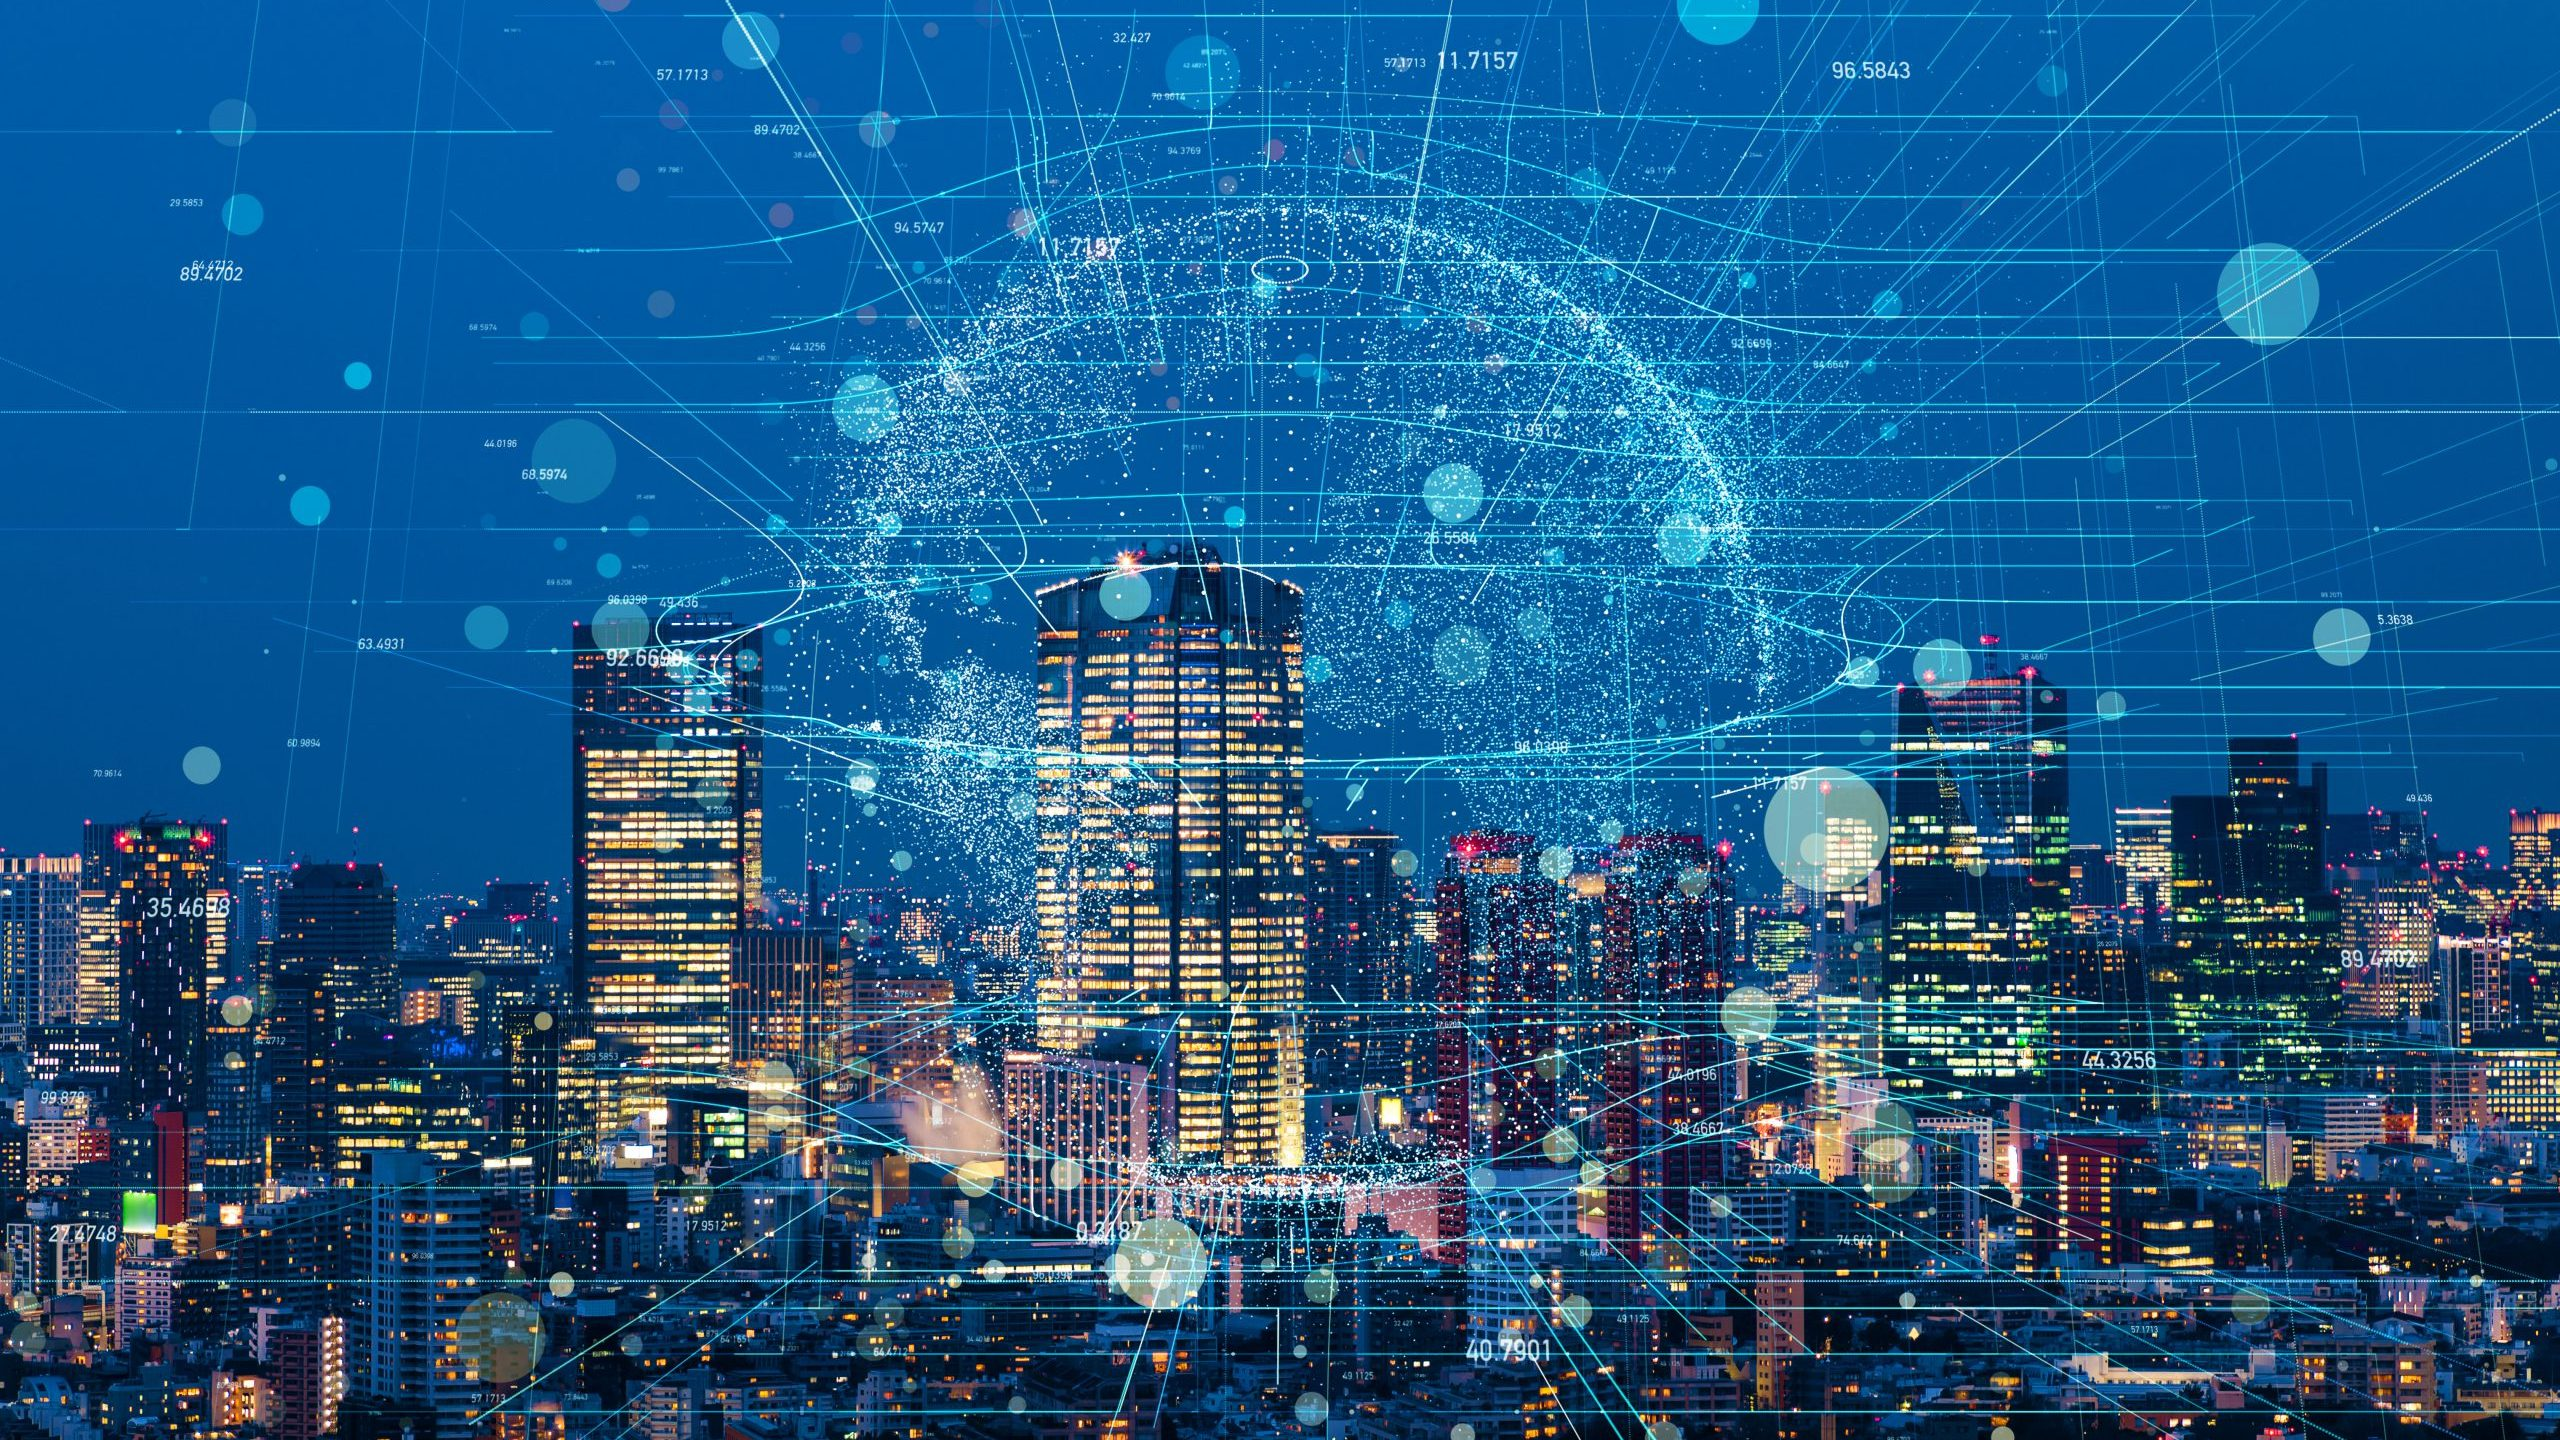 B2B Adapts to Challenges: 2020 is Driving Digital Transformation Like Never Before